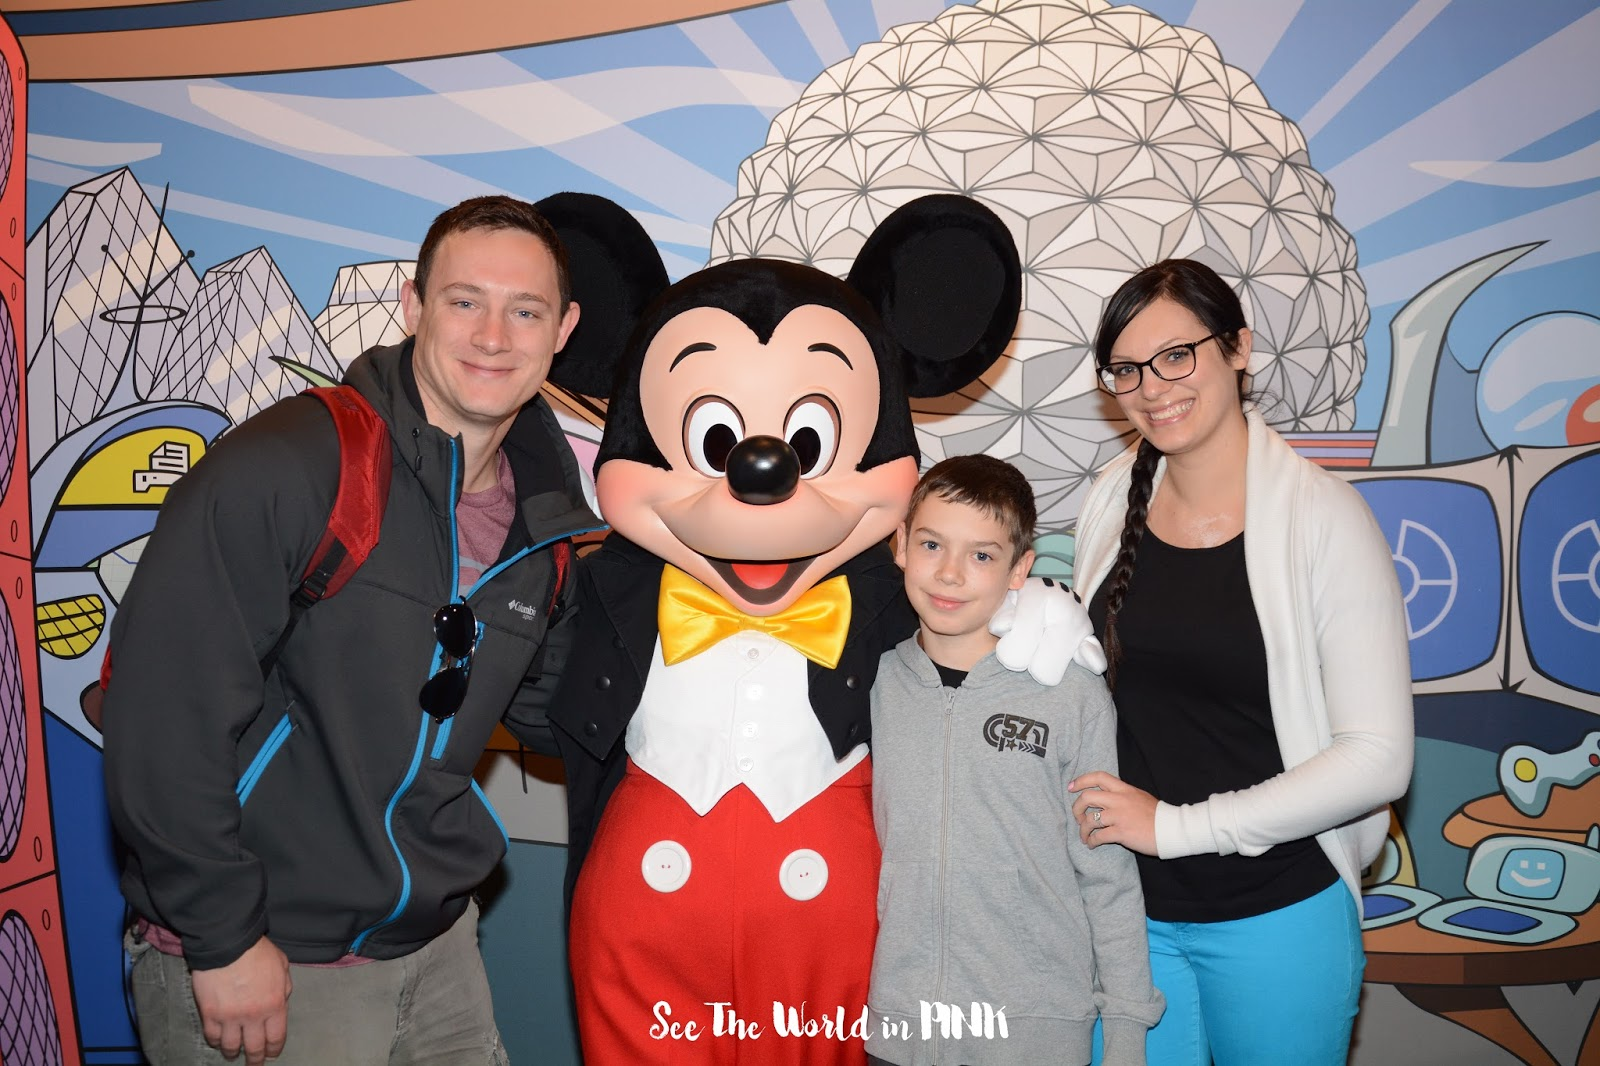 Travel Post - Orlando, Florida ~ Walt Disney World, Universal Studios, and Swimming With Manatees!